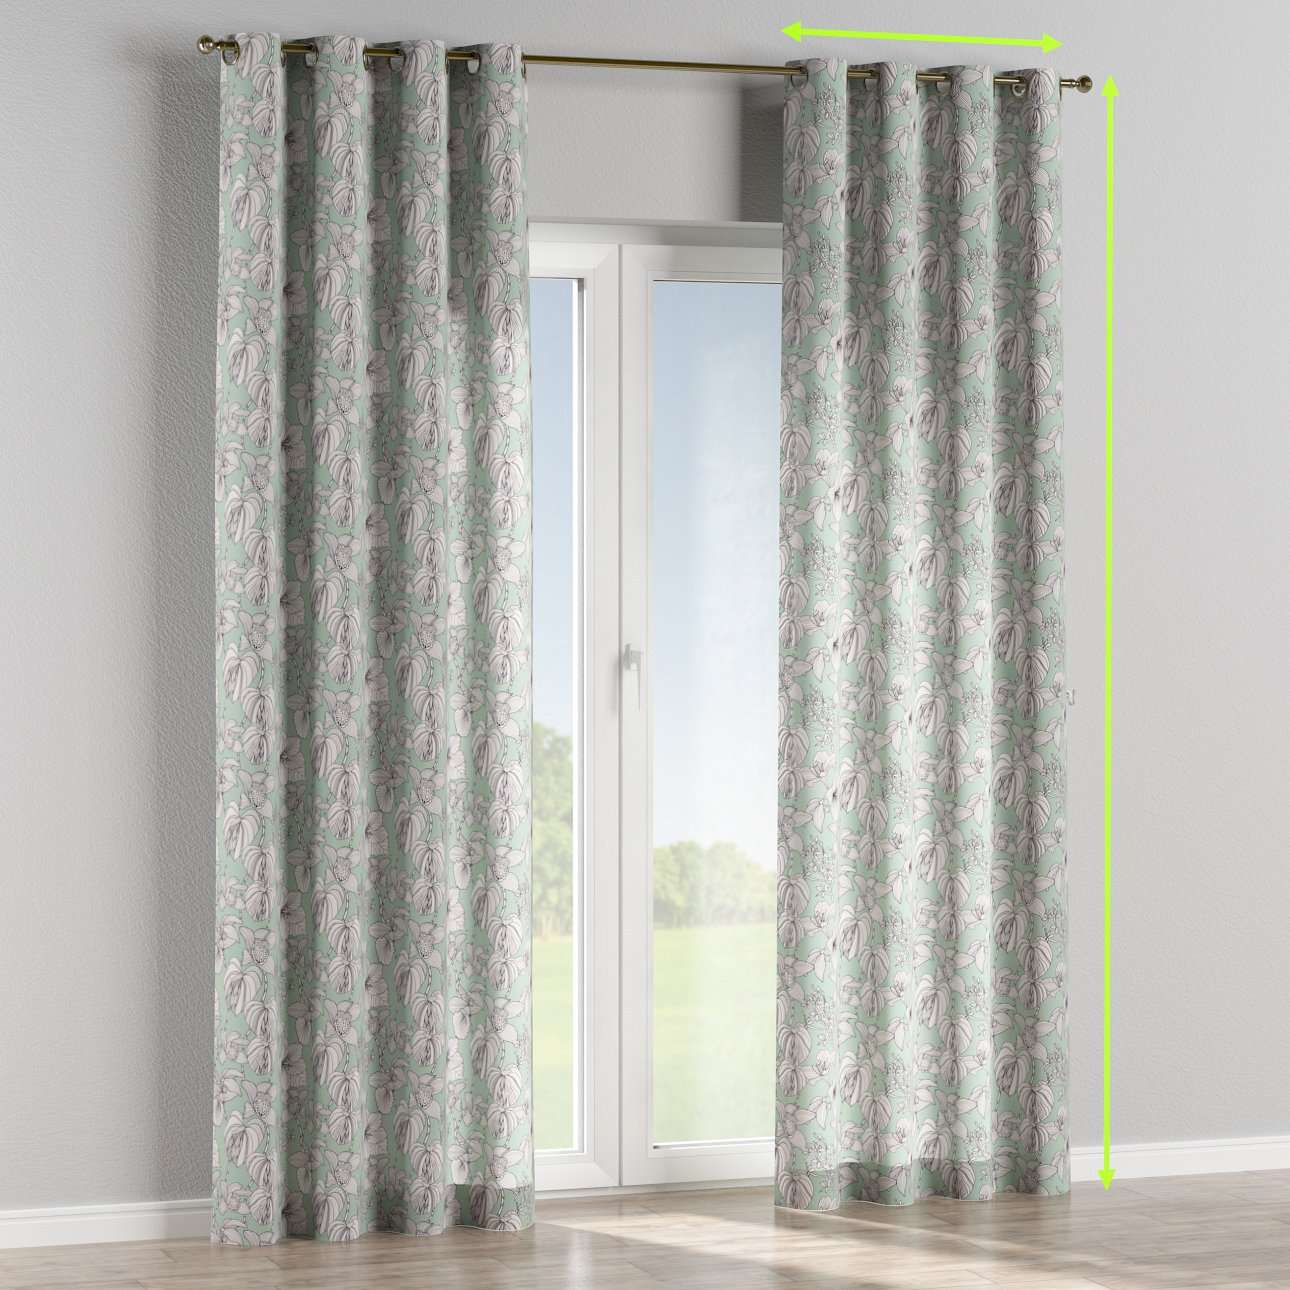 Eyelet lined curtains in collection Brooklyn, fabric: 137-76